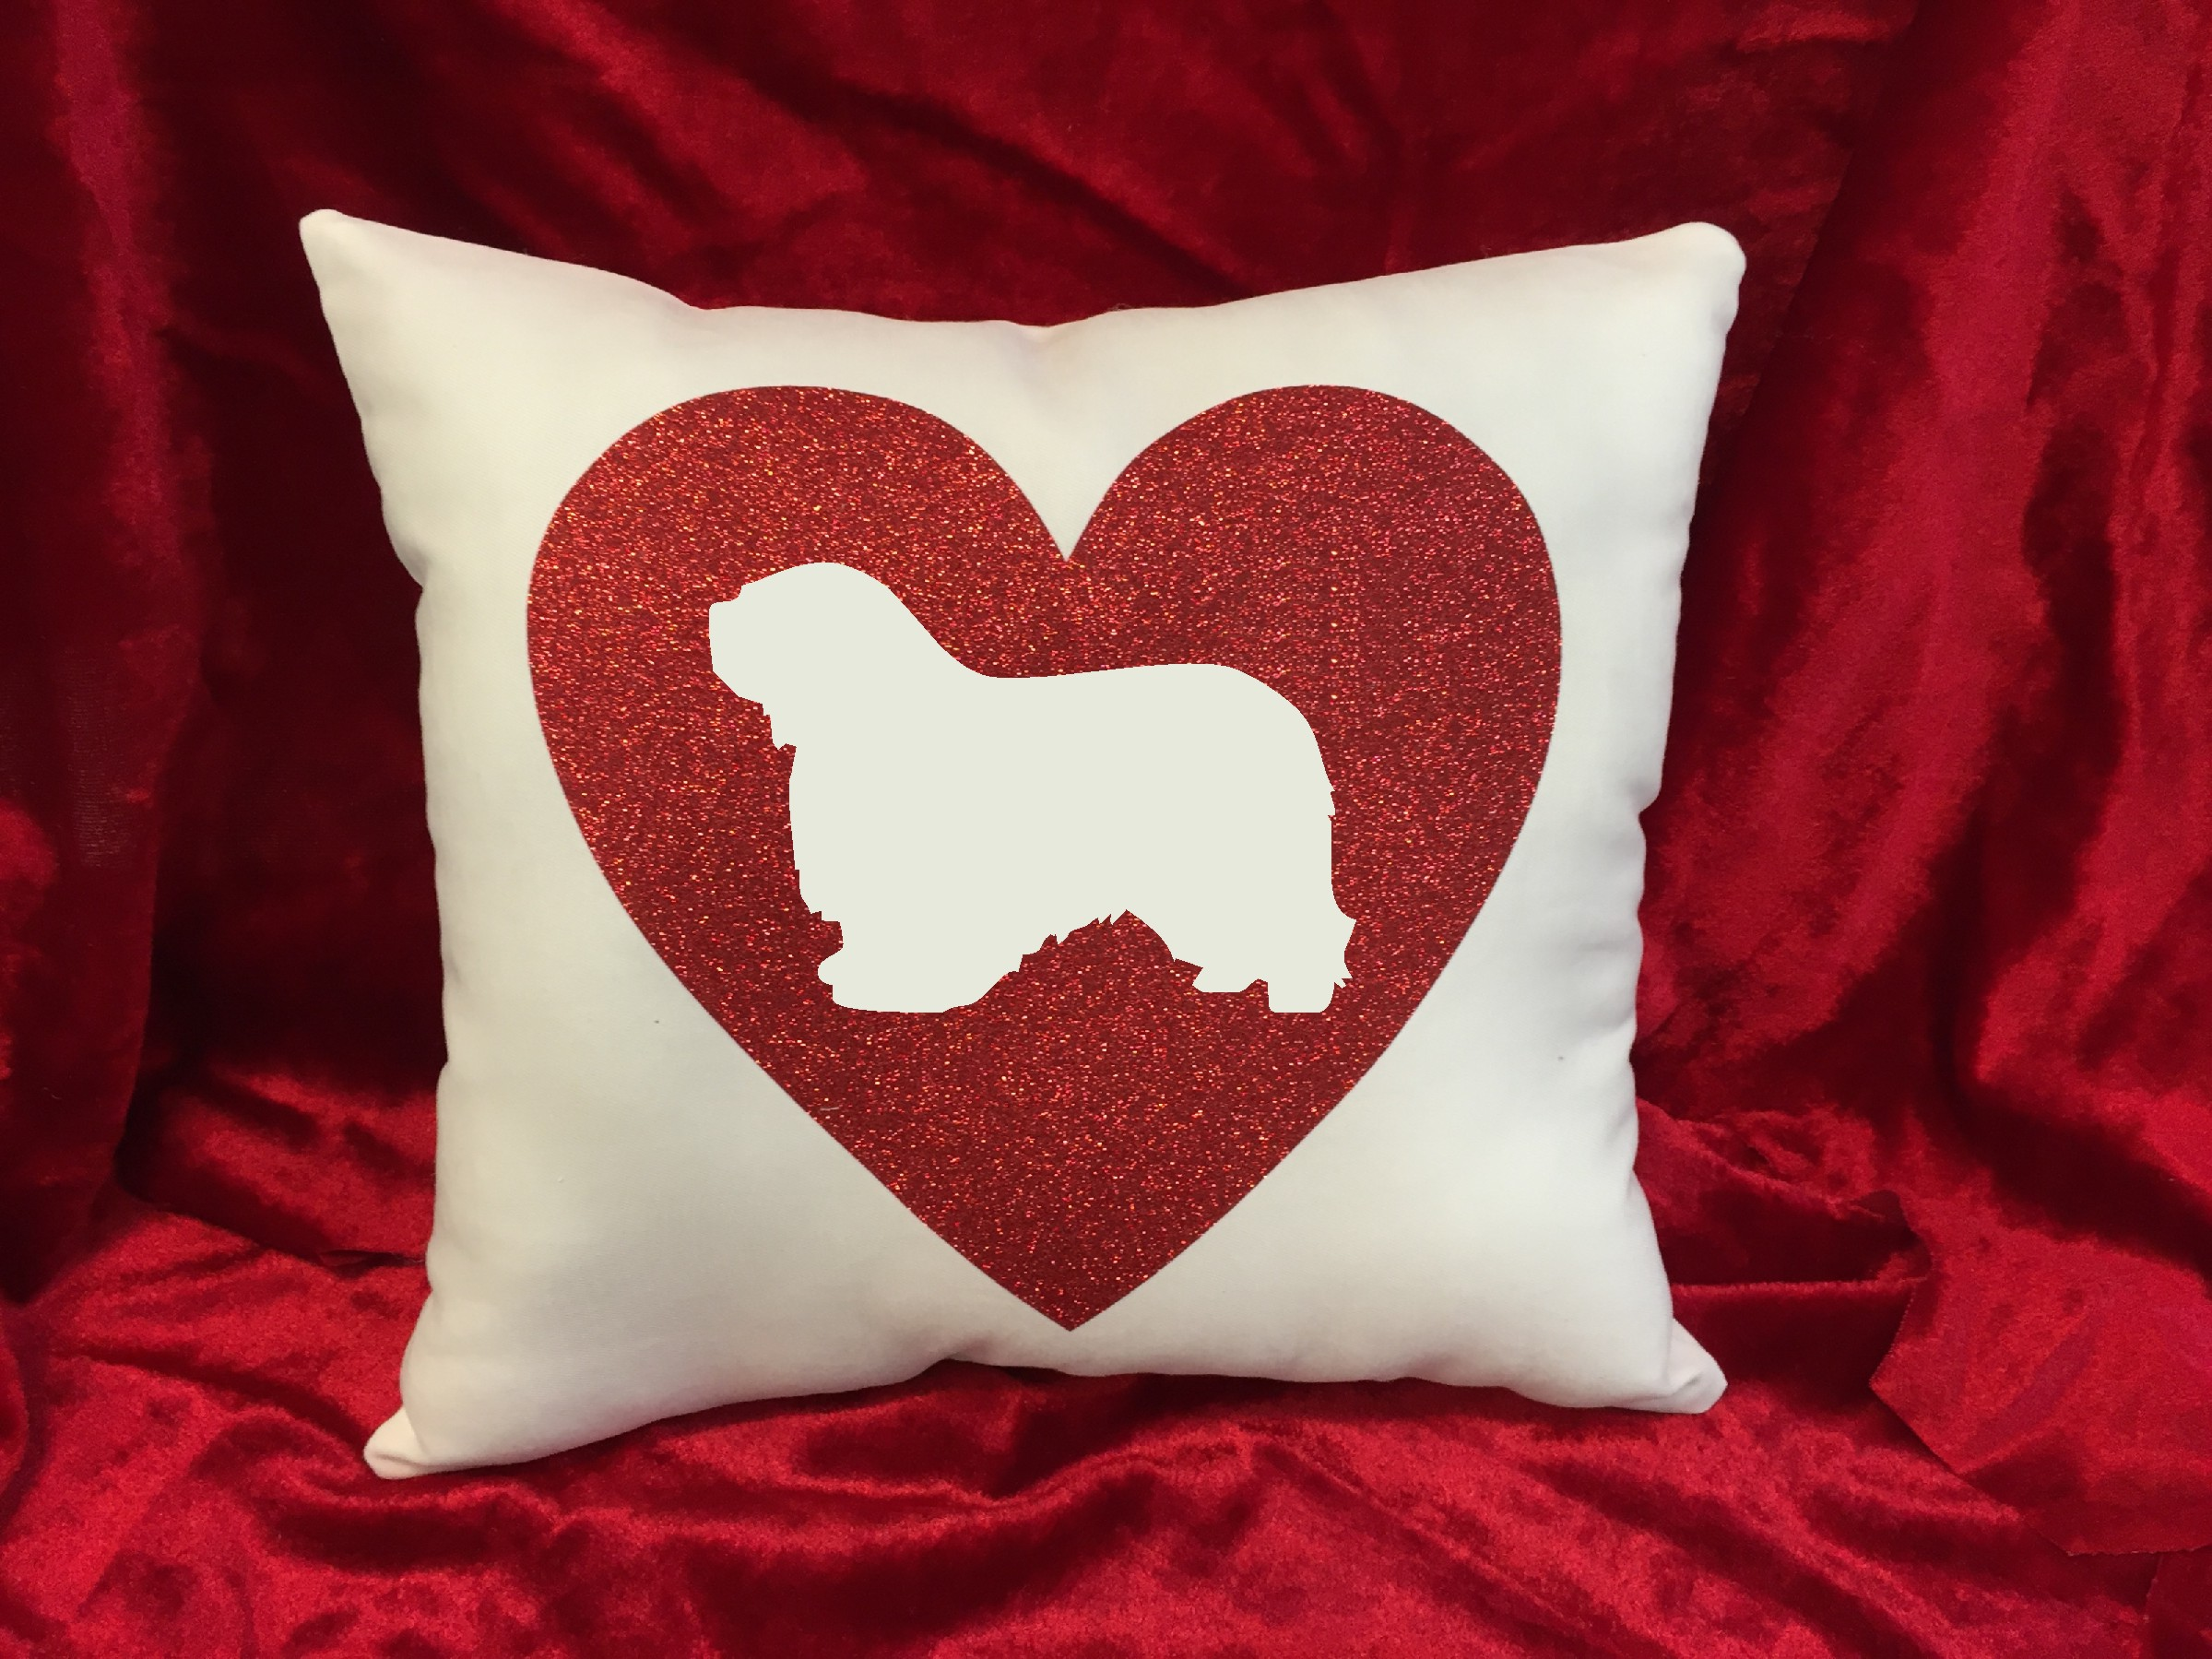 Dogs - Throw Pillow - Polish Lowland Sheepdog